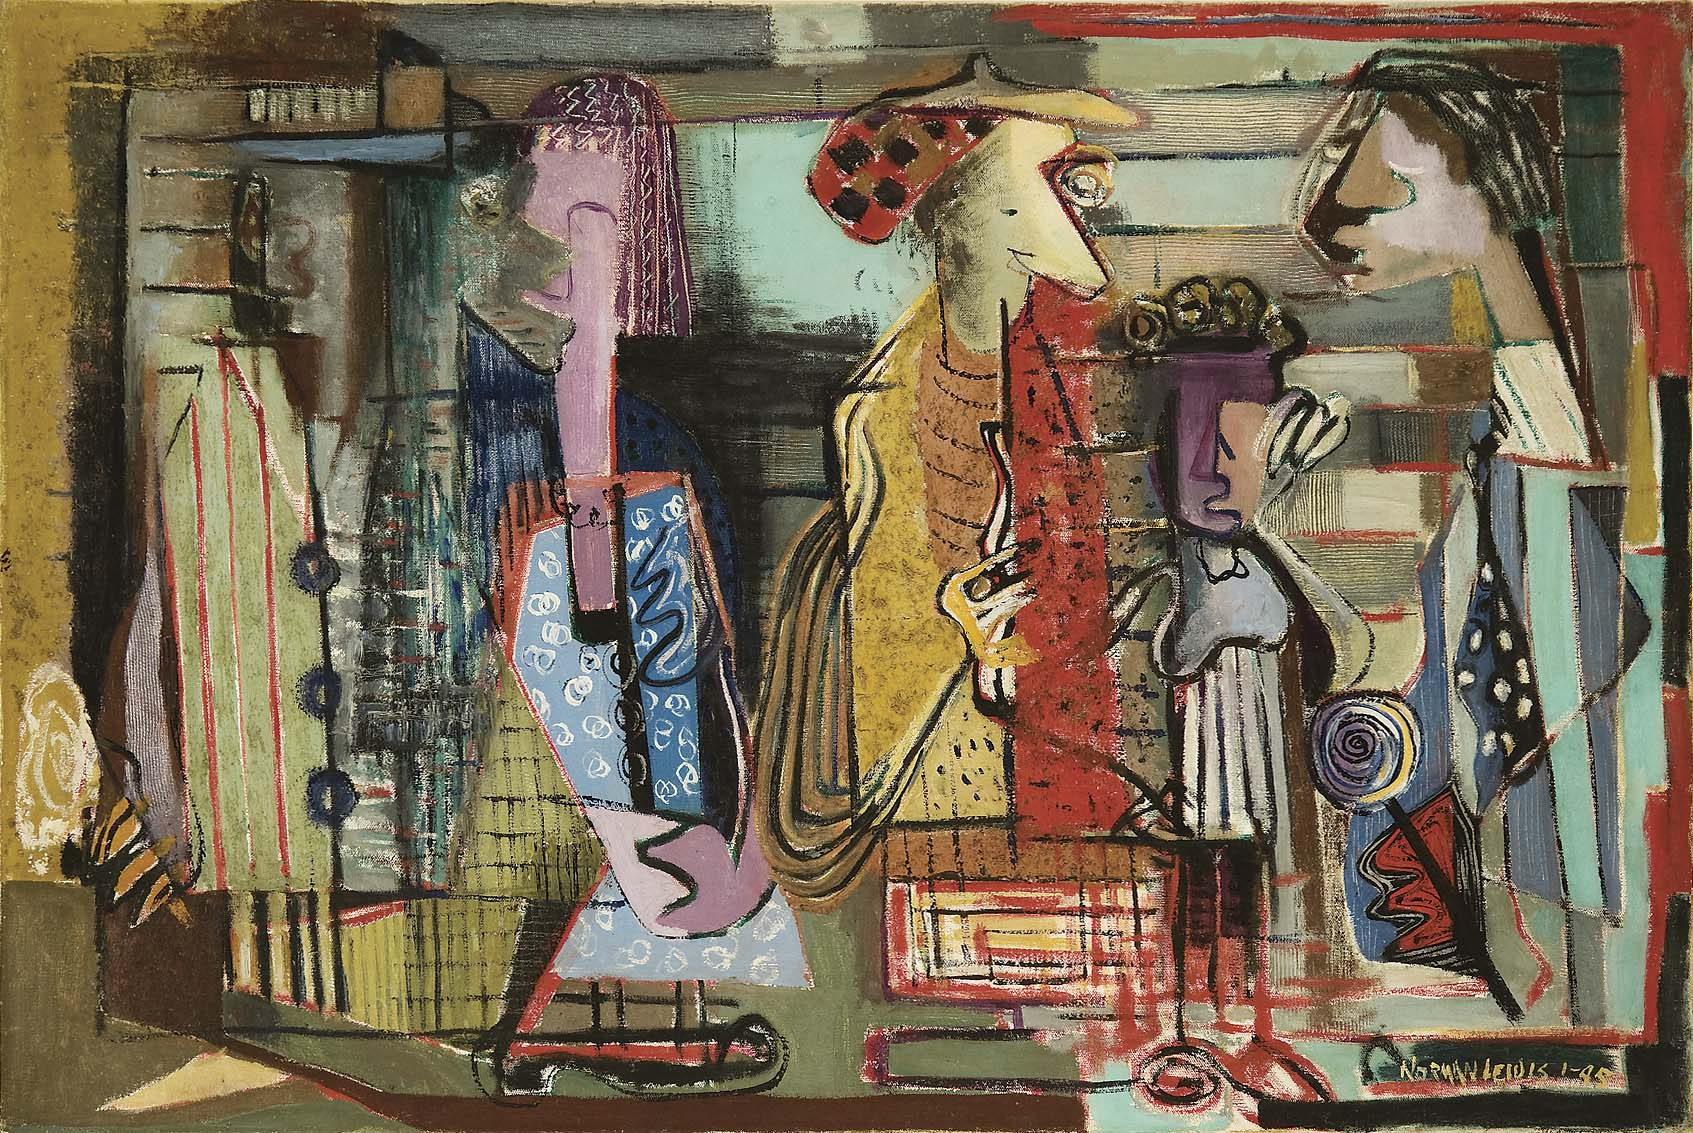 NORMAN WILFRED LEWIS,   Untitled (Subway Station),   1945, oil and sand on canvas. On loan from Art Bridges.  LX.085